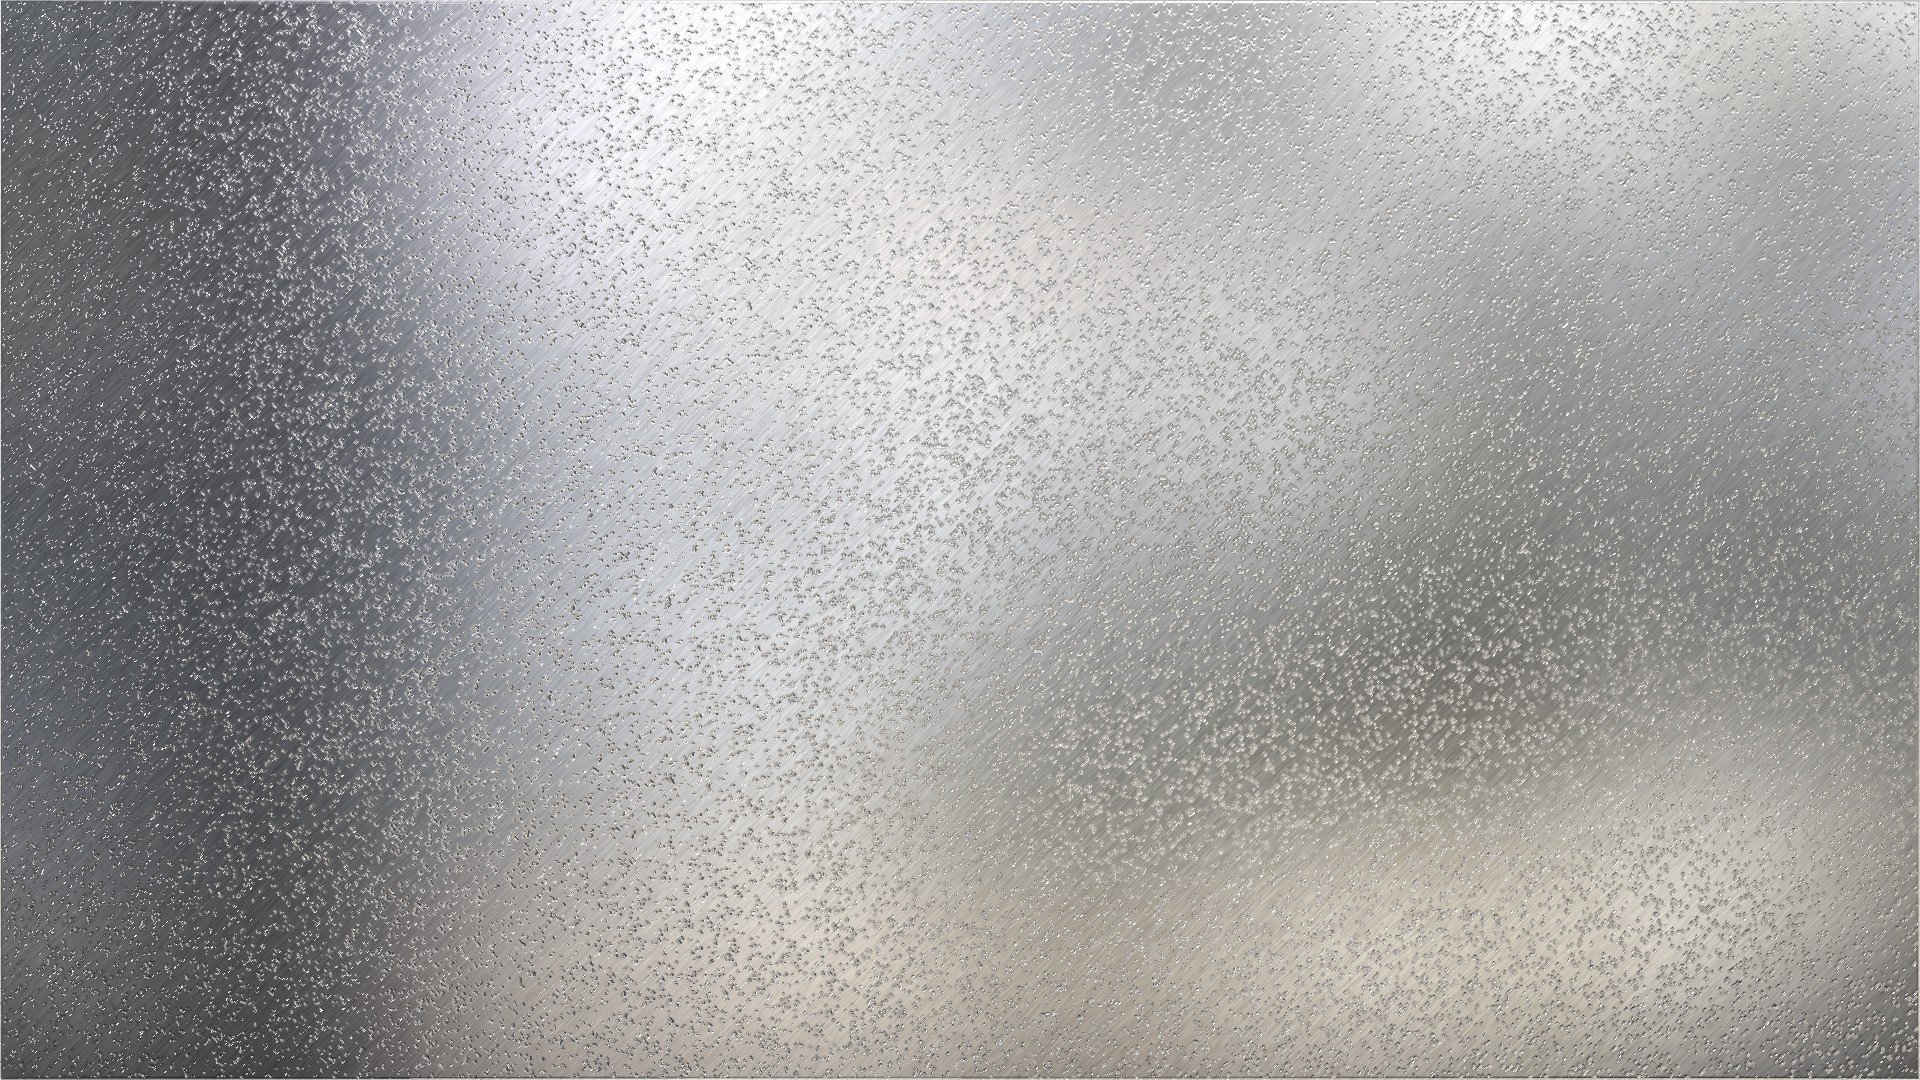 White glass textures backgrounds wallpaper | | 345997 |  WallpaperUP